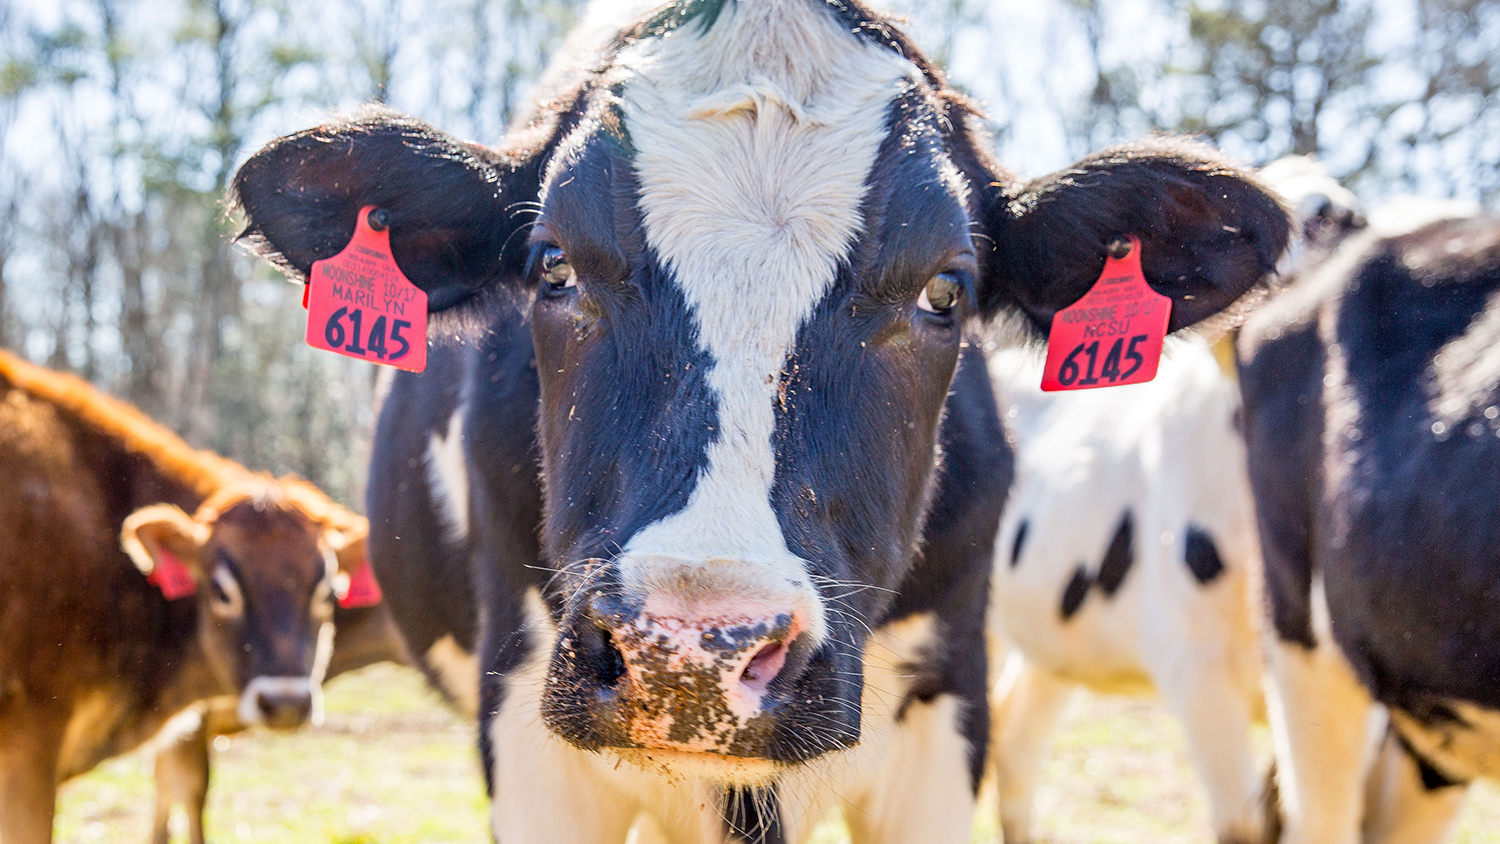 A black and white cow with red ear tags looks directly at the camera